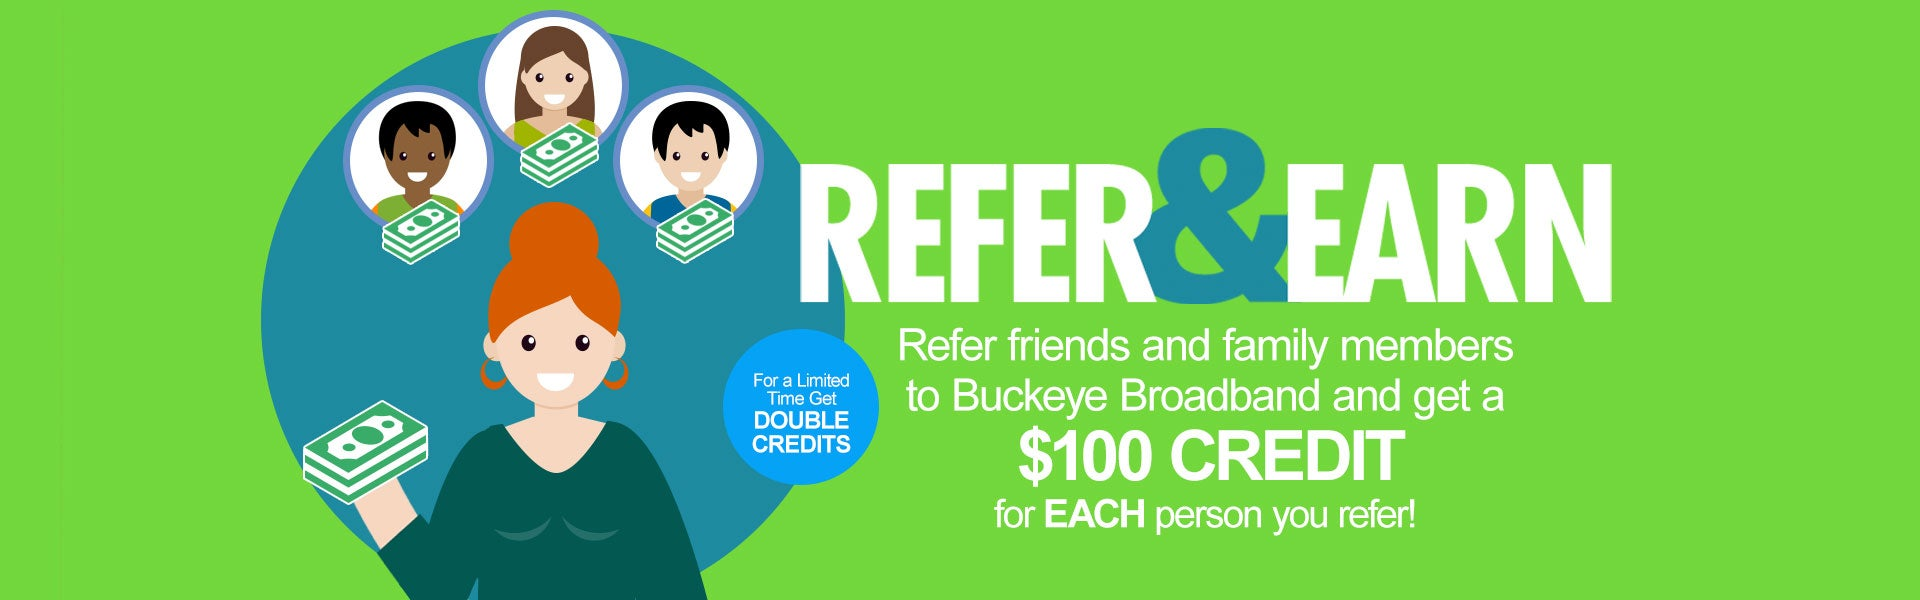 Refer and Earn Image